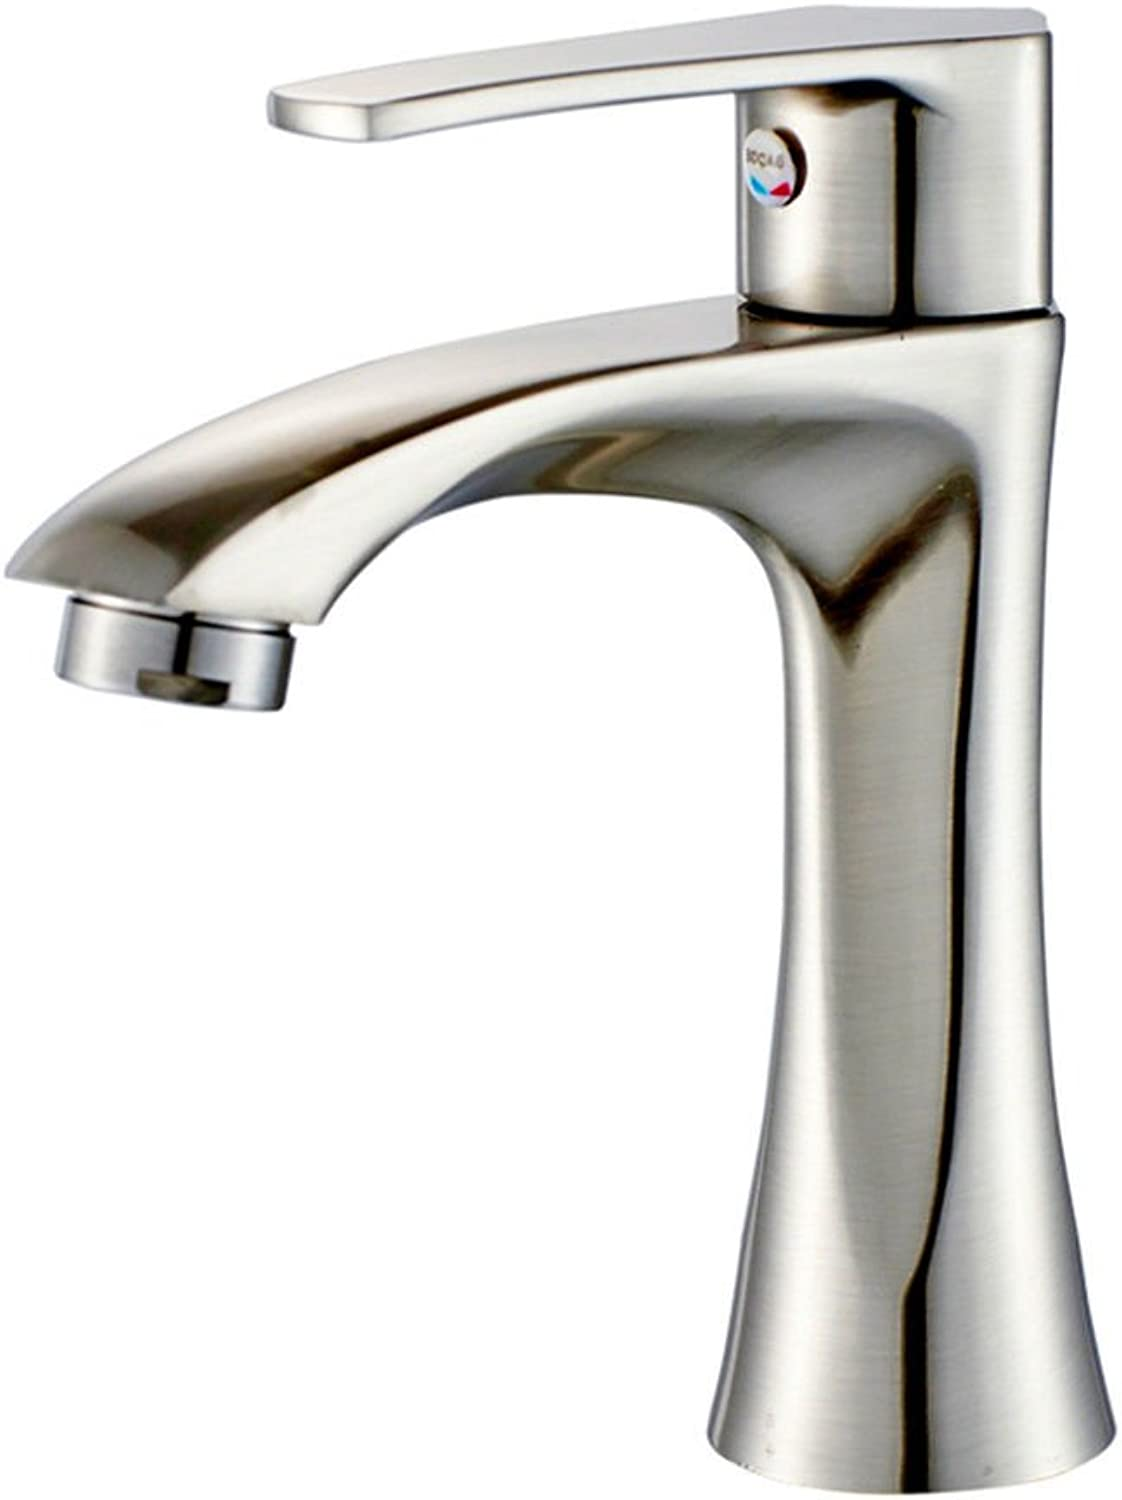 Lalaky Taps Faucet Kitchen Mixer Sink Waterfall Bathroom Mixer Basin Mixer Tap for Kitchen Bathroom and Washroom Single Cold Single Hole